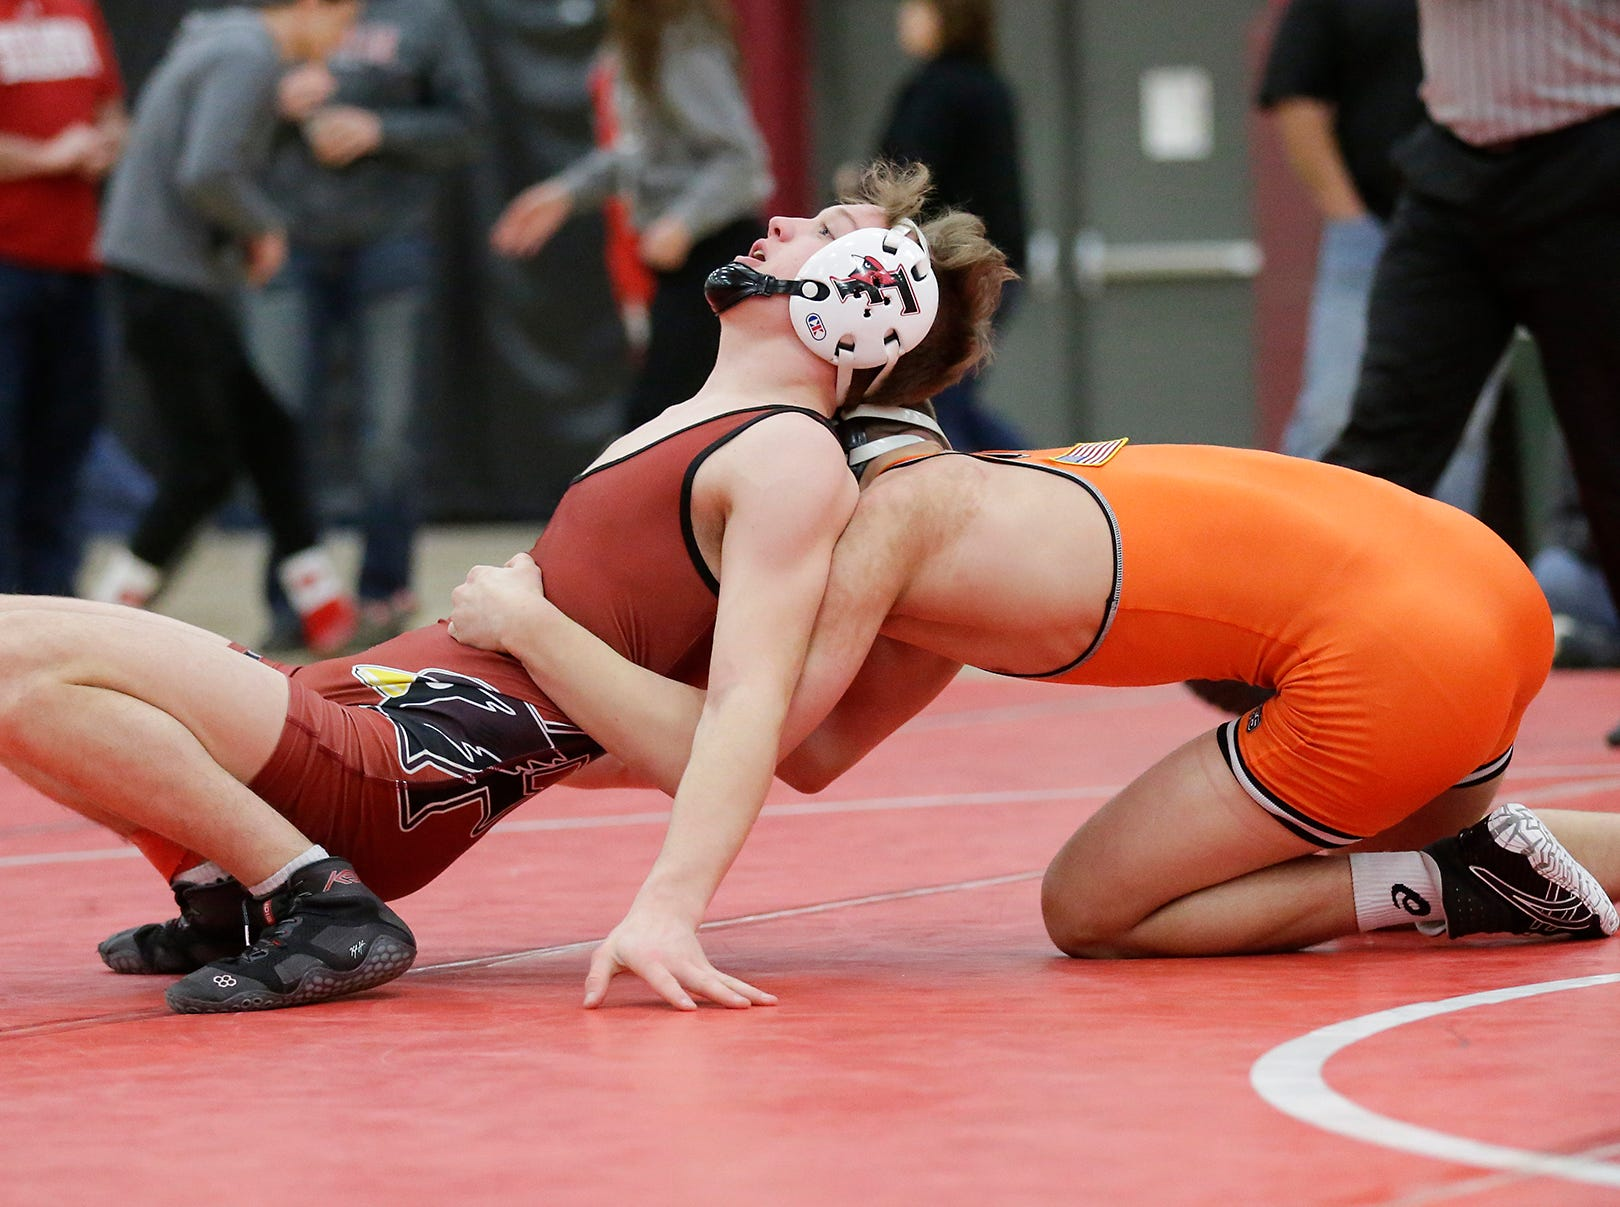 Fond du Lac High School's Tristan Lakey wrestles Kaukauna High School's Logan Stumpf in a 126-pound match during the Fox Valley Association wrestling championship meet held Saturday, Feb. 2, 2019, in Fond du Lac. Stumpf won the match by a score of 5-3.